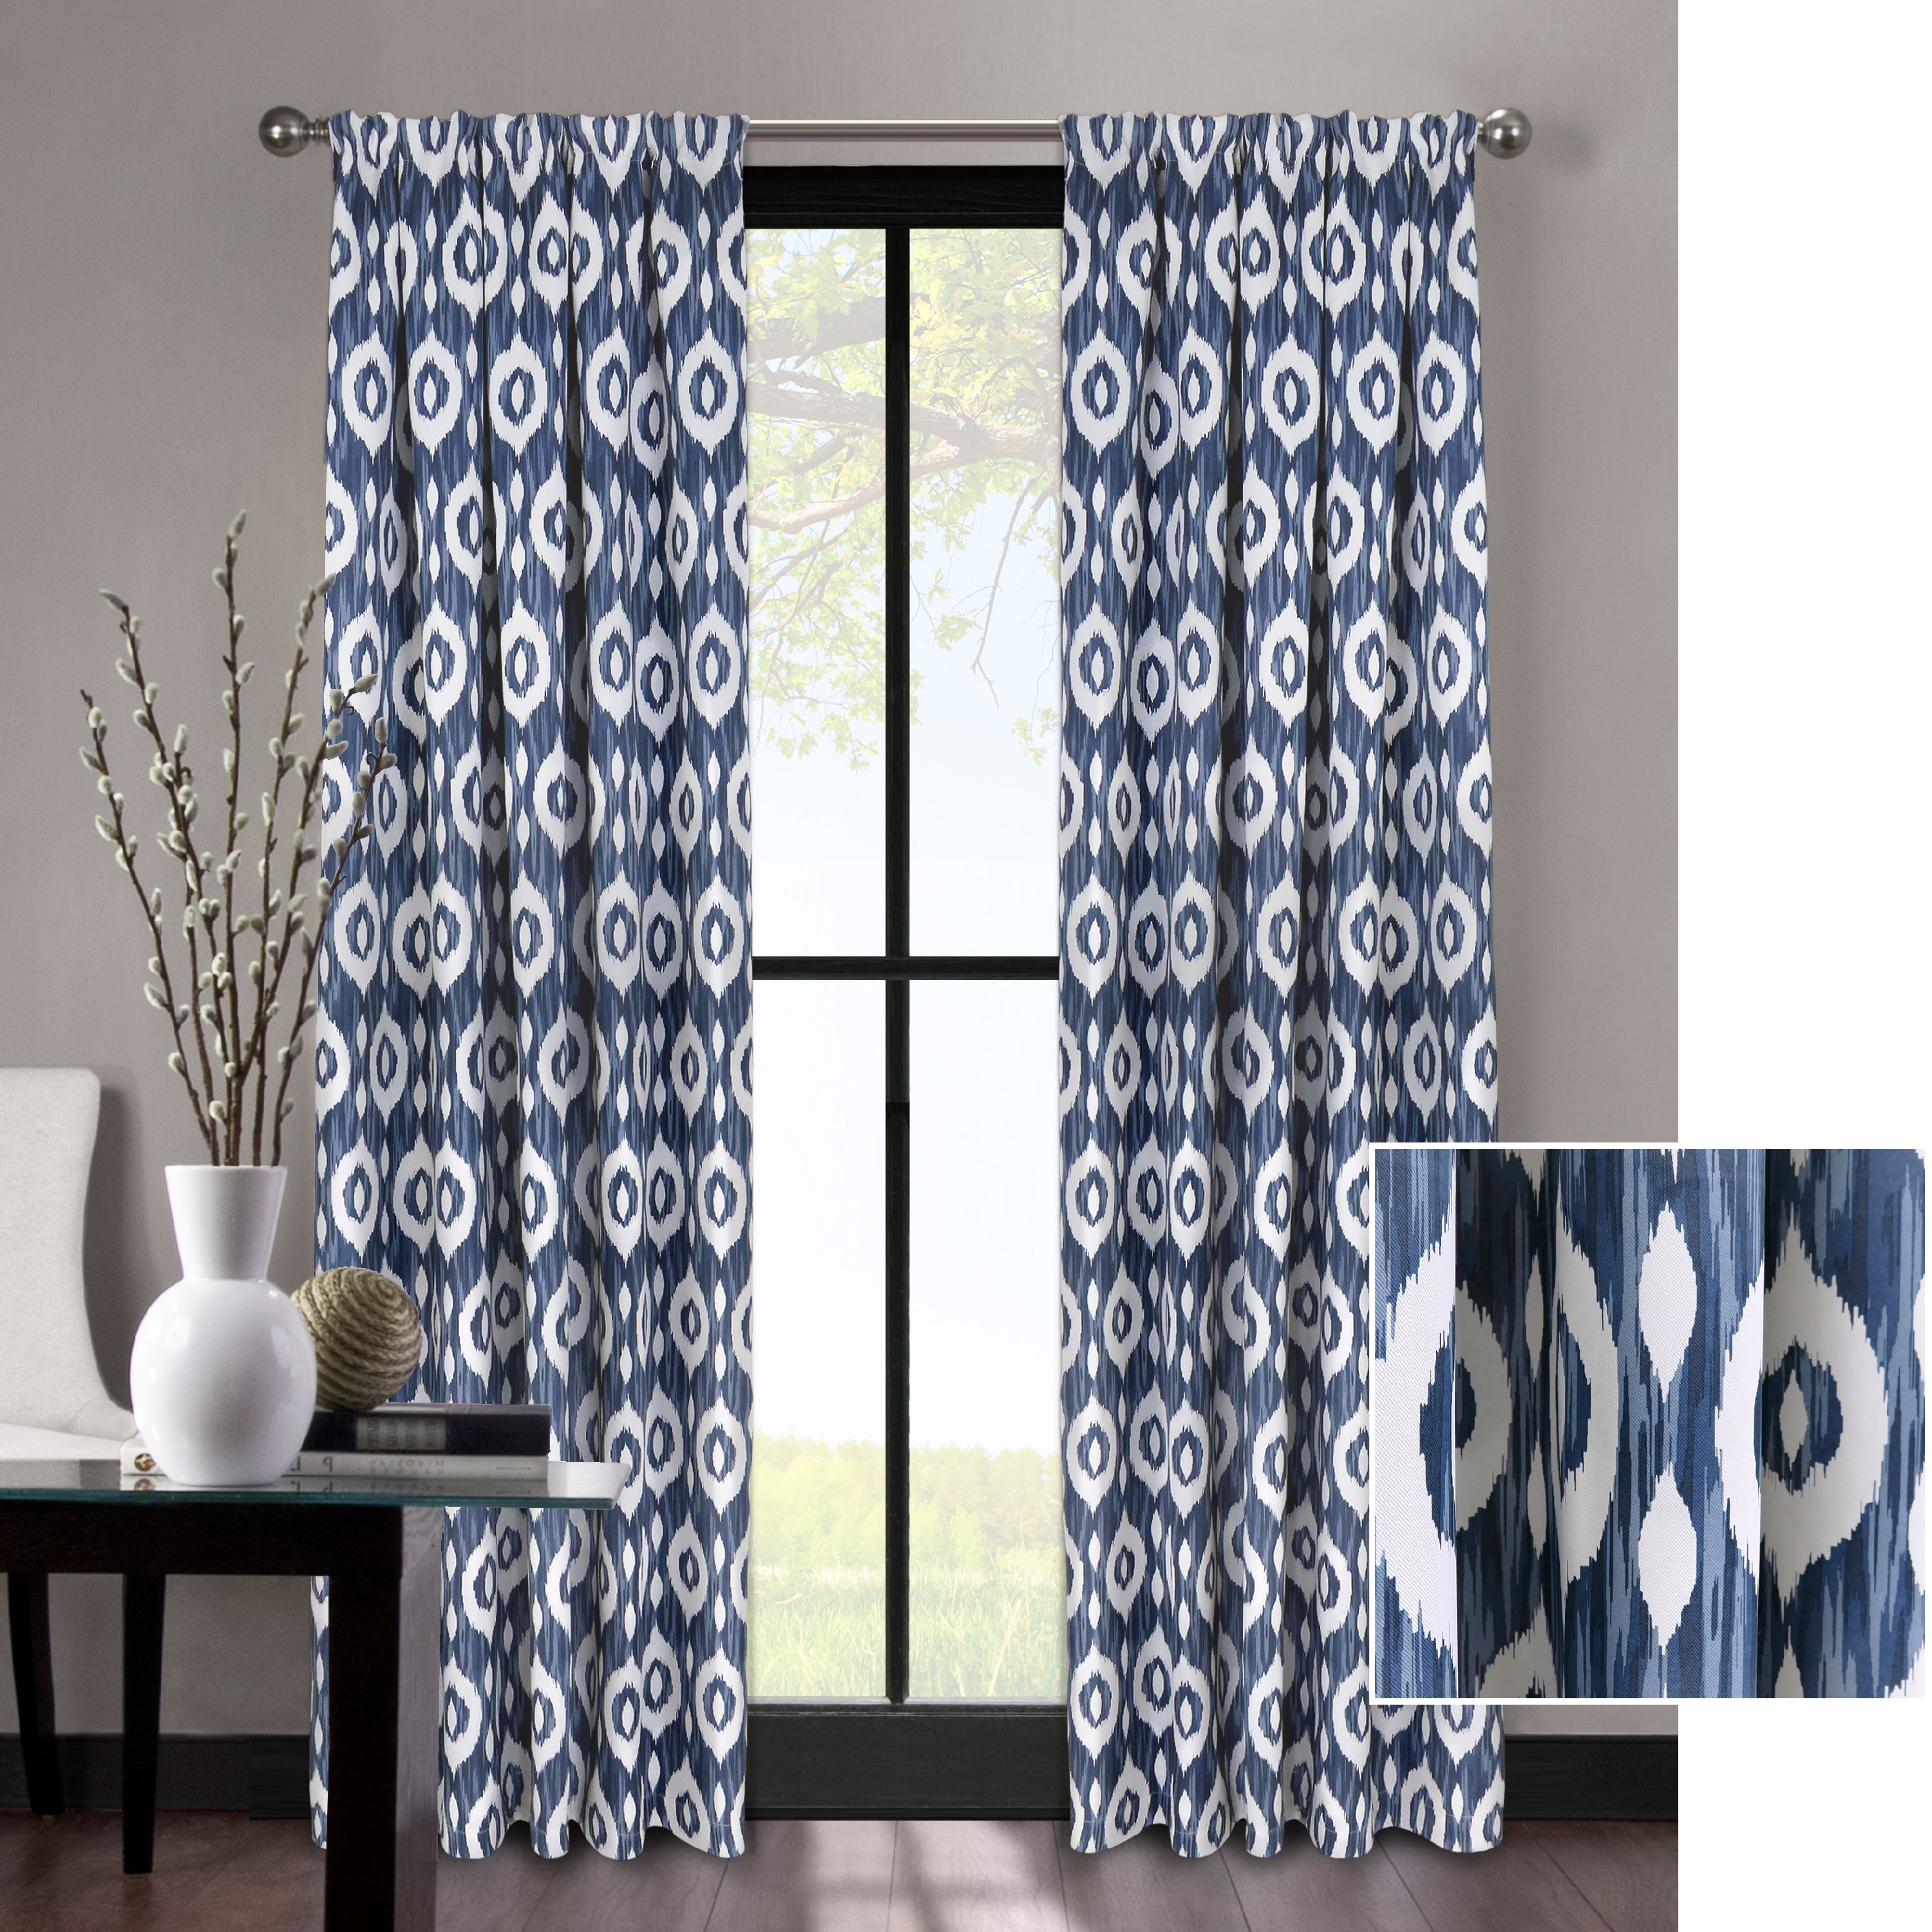 Better Homes and Gardens Tribal Ikat Natural Room Darkening Window Curtain Panel